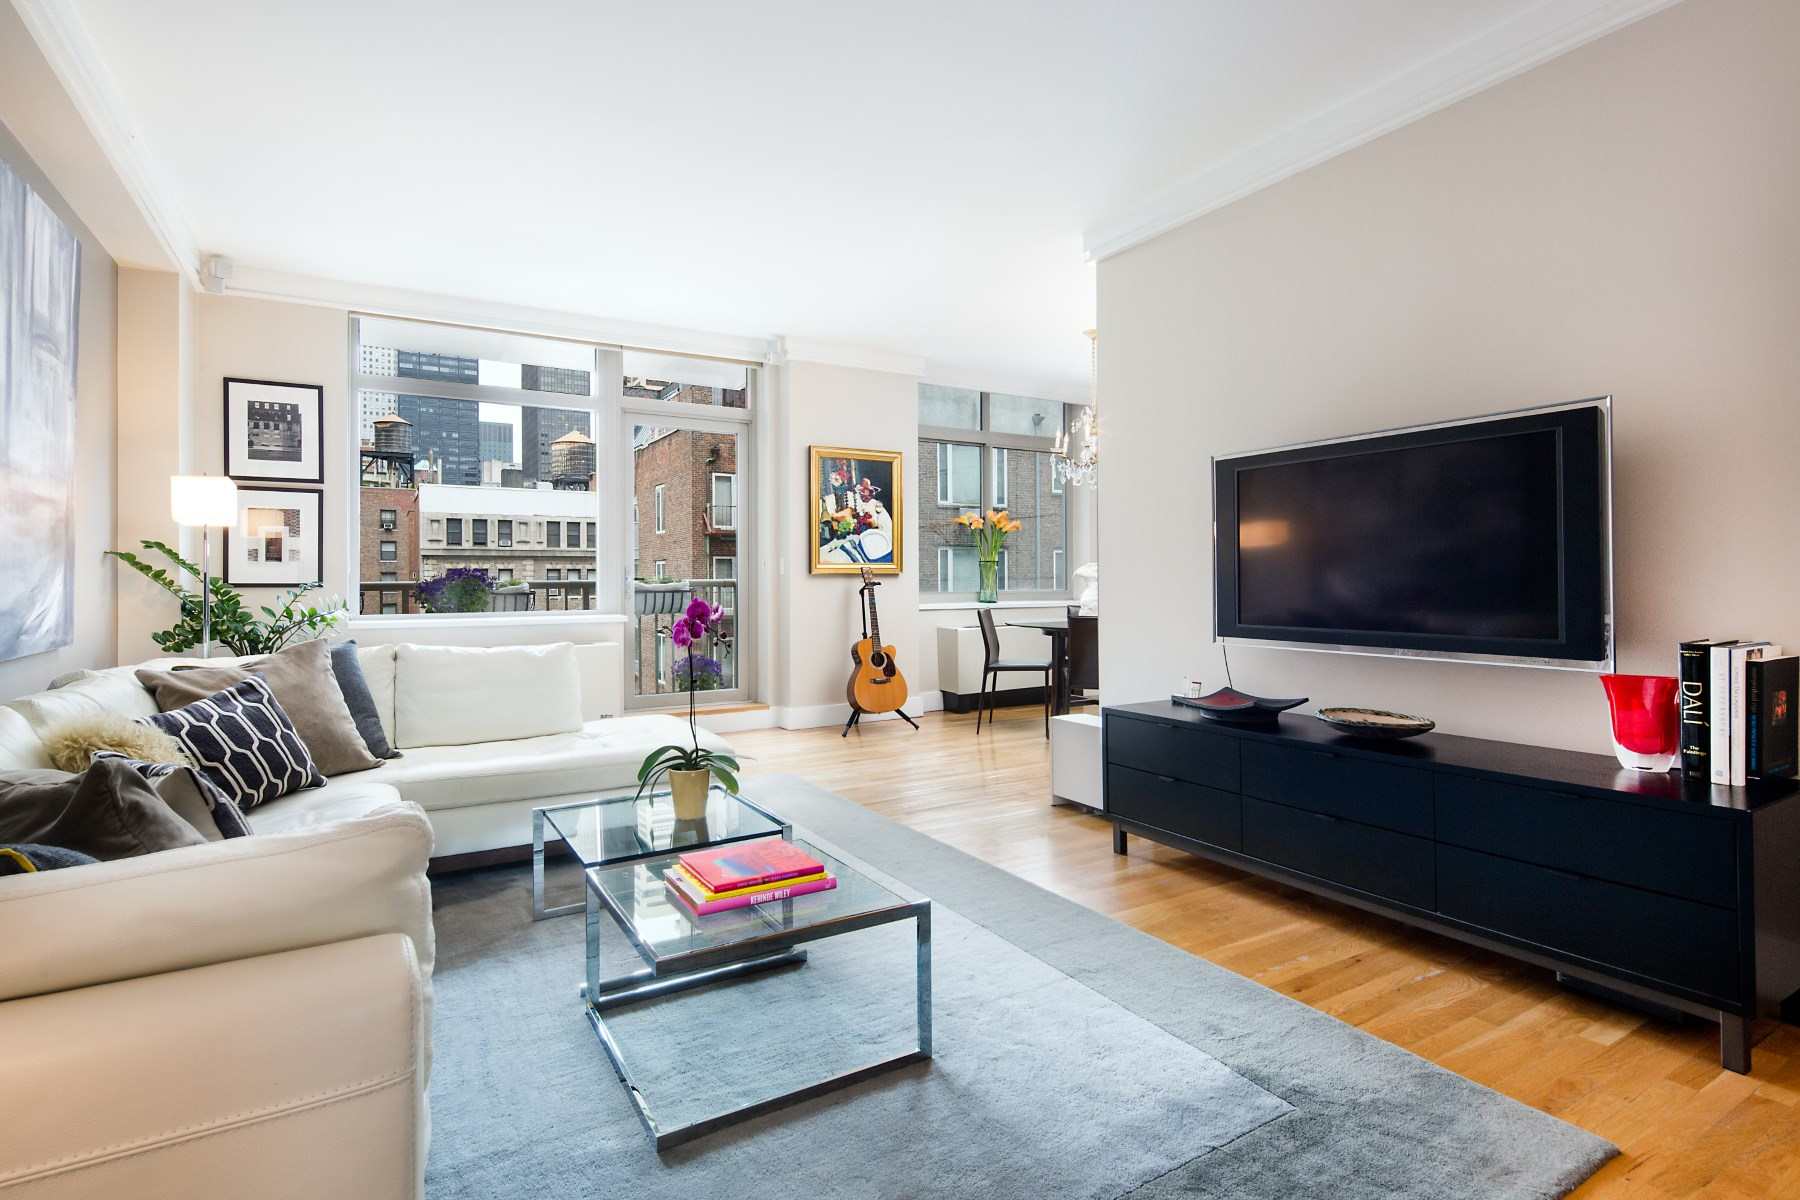 Condominium for Sale at Stunning 2 Bedroom Condo in Murray Hill 143 East 34th Street Apt 9N Murray Hill, New York, New York, 10016 United States